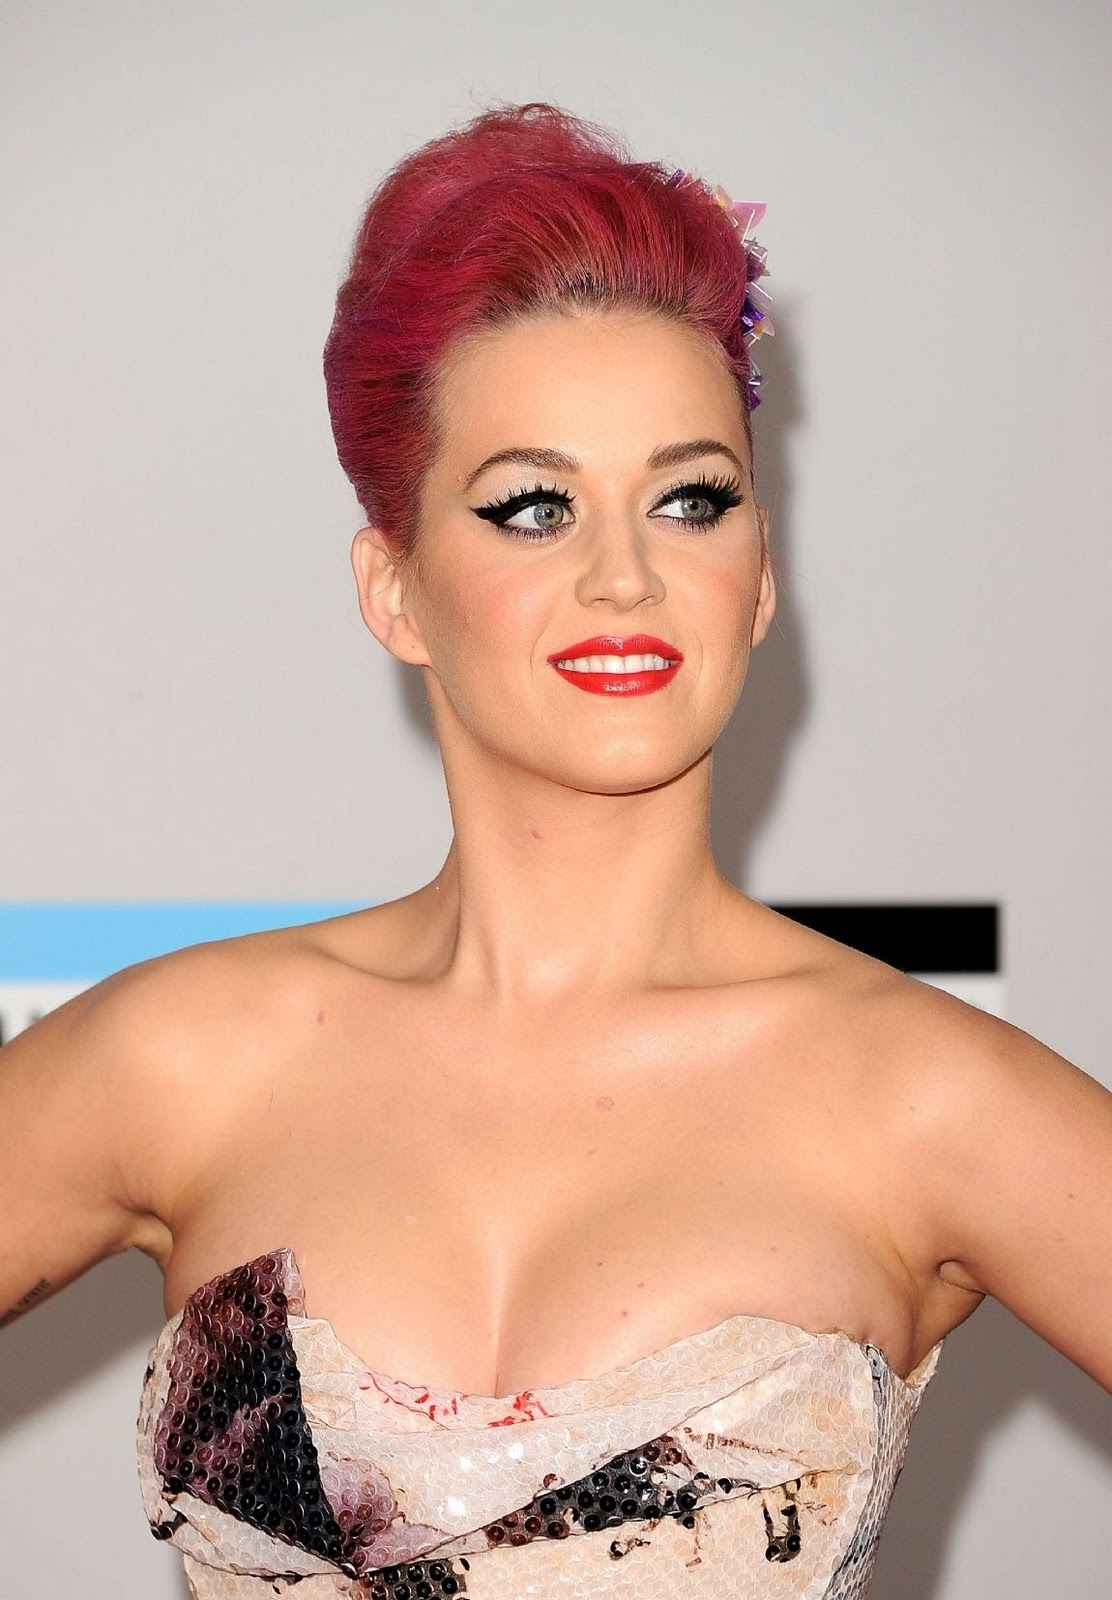 http://3.bp.blogspot.com/-V-k7UHmkHfI/Tsu2t5HyI4I/AAAAAAAAHDk/zon0RKkMdo0/s1600/Katy+Perry+at+the+2011+American+Music+Awards+%25E2%2580%2593+wearing+Vivienne+Westwood+%25282%2529.jpg